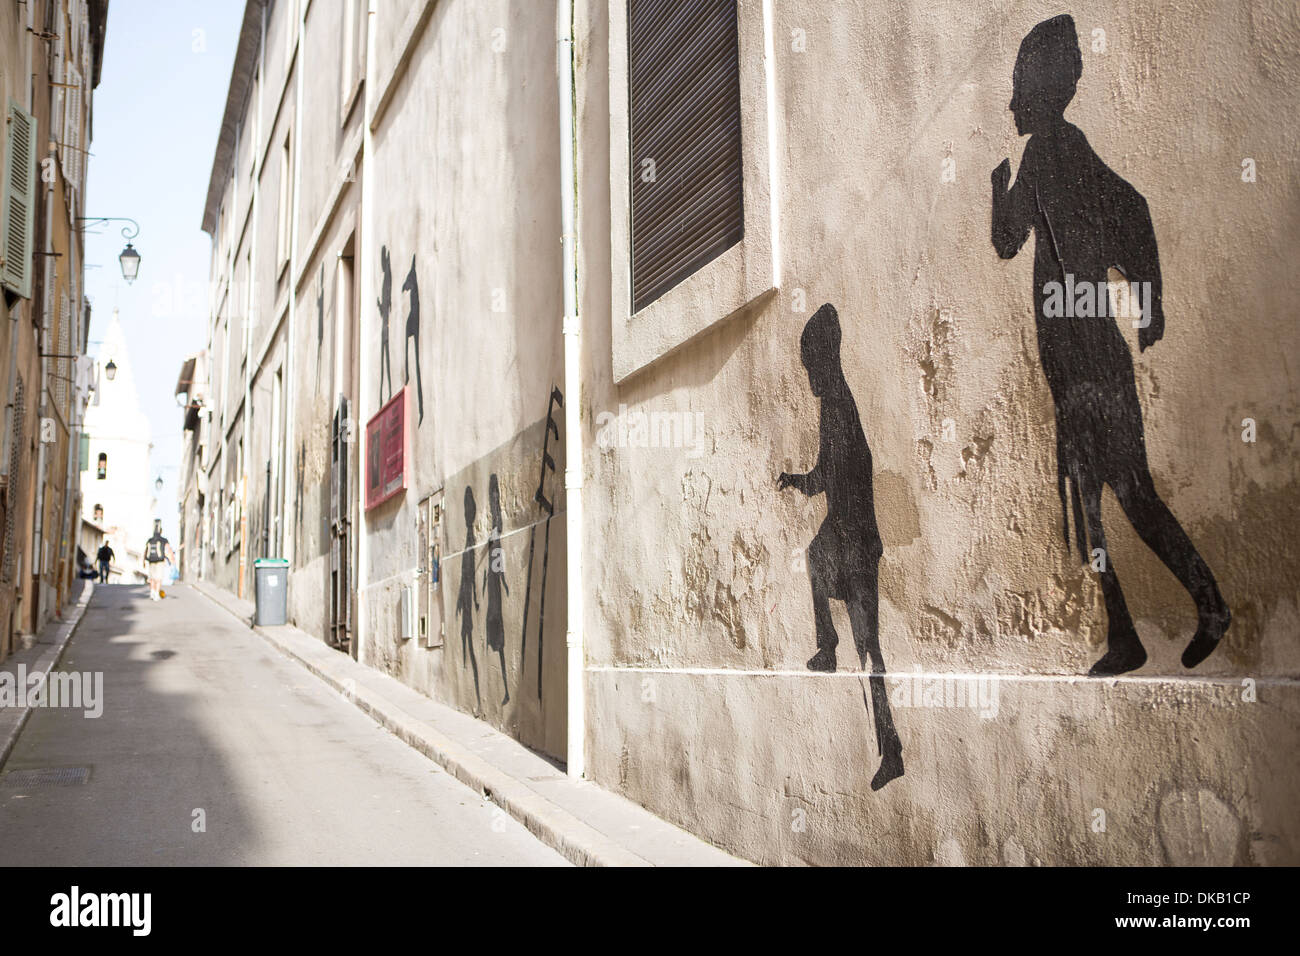 Streetscene, Marseille, France - Stock Image